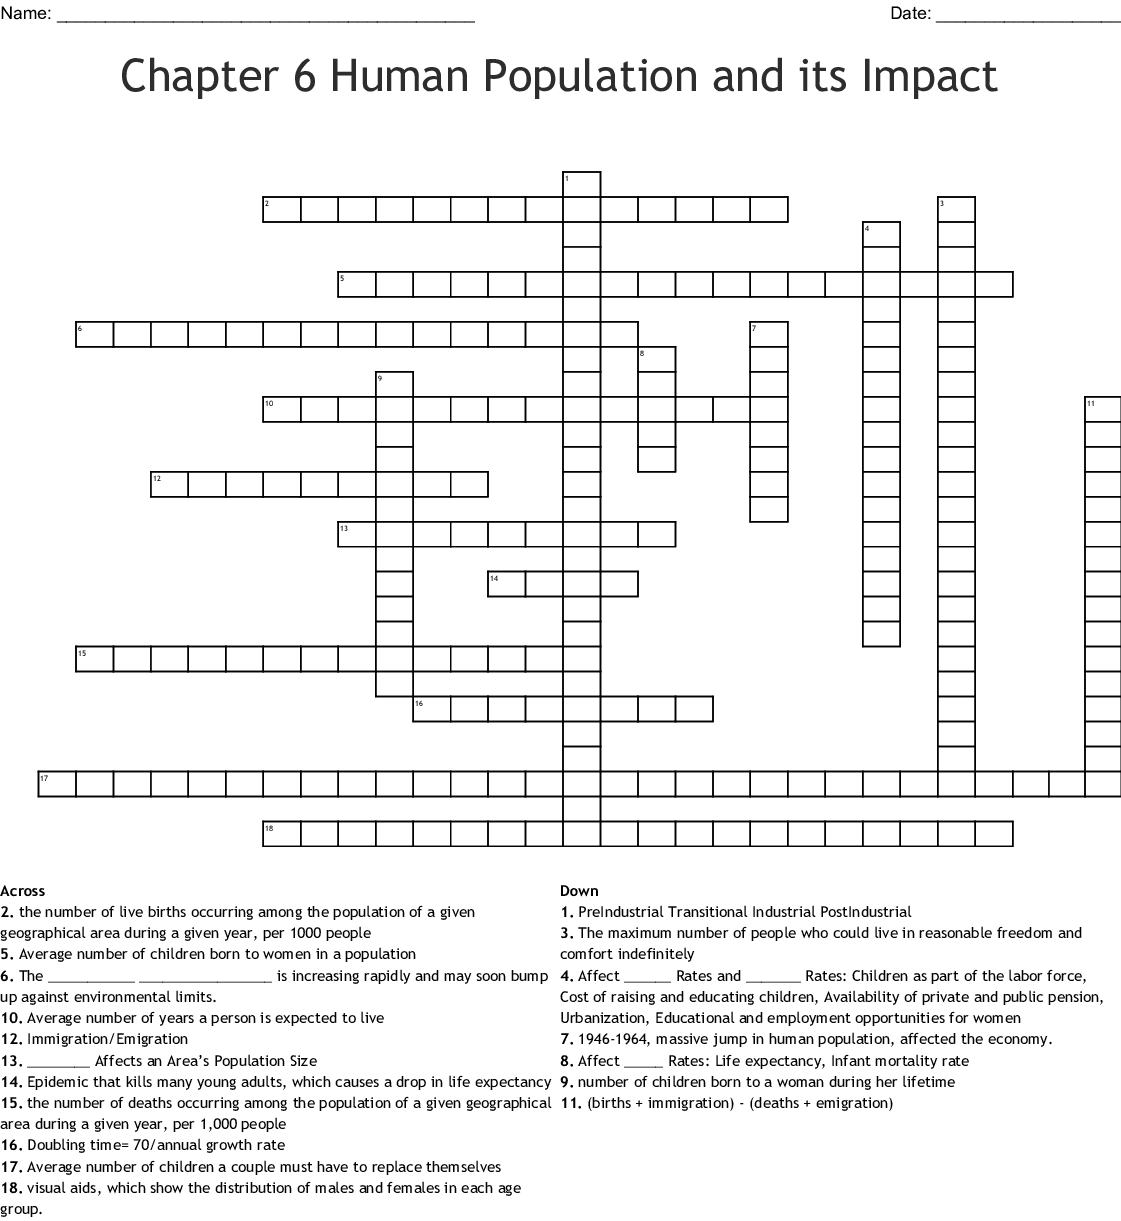 Chapter 6 Human Population And Its Impact Crossword